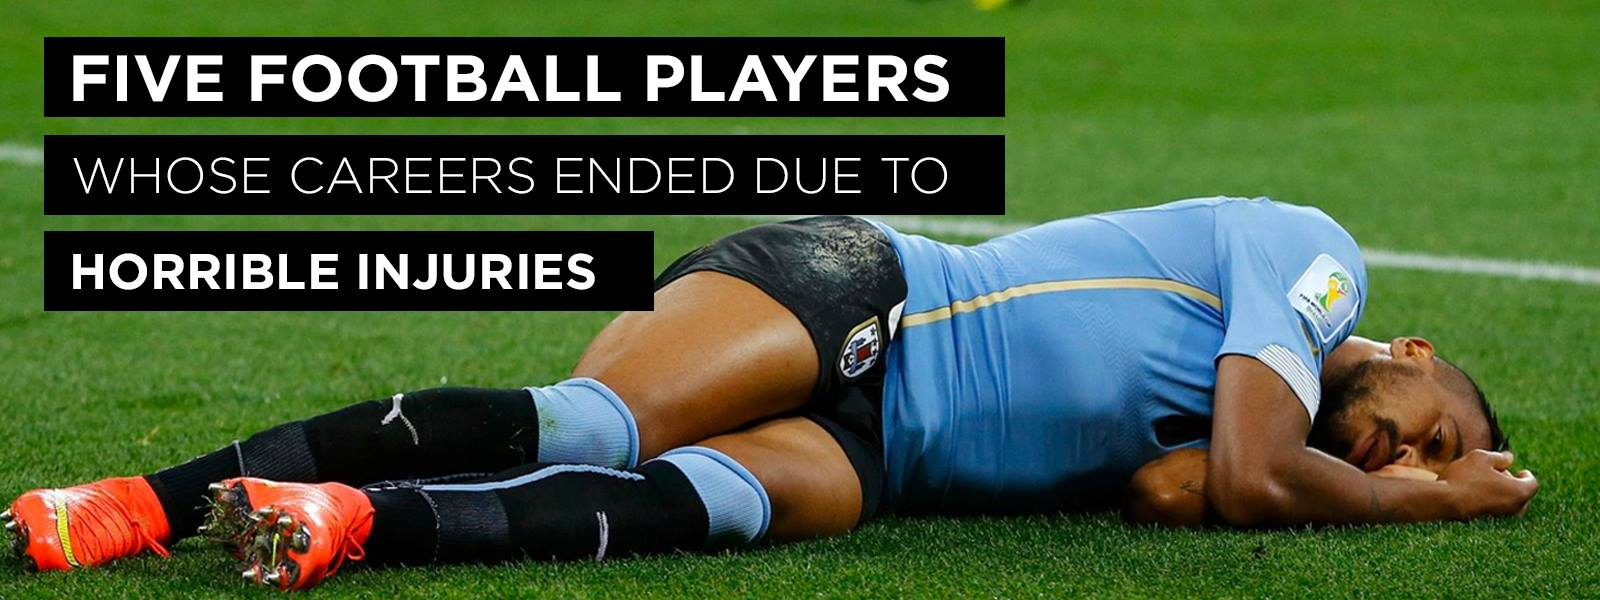 5 Footballers Whose Careers Ended Due To Horrible Injuries